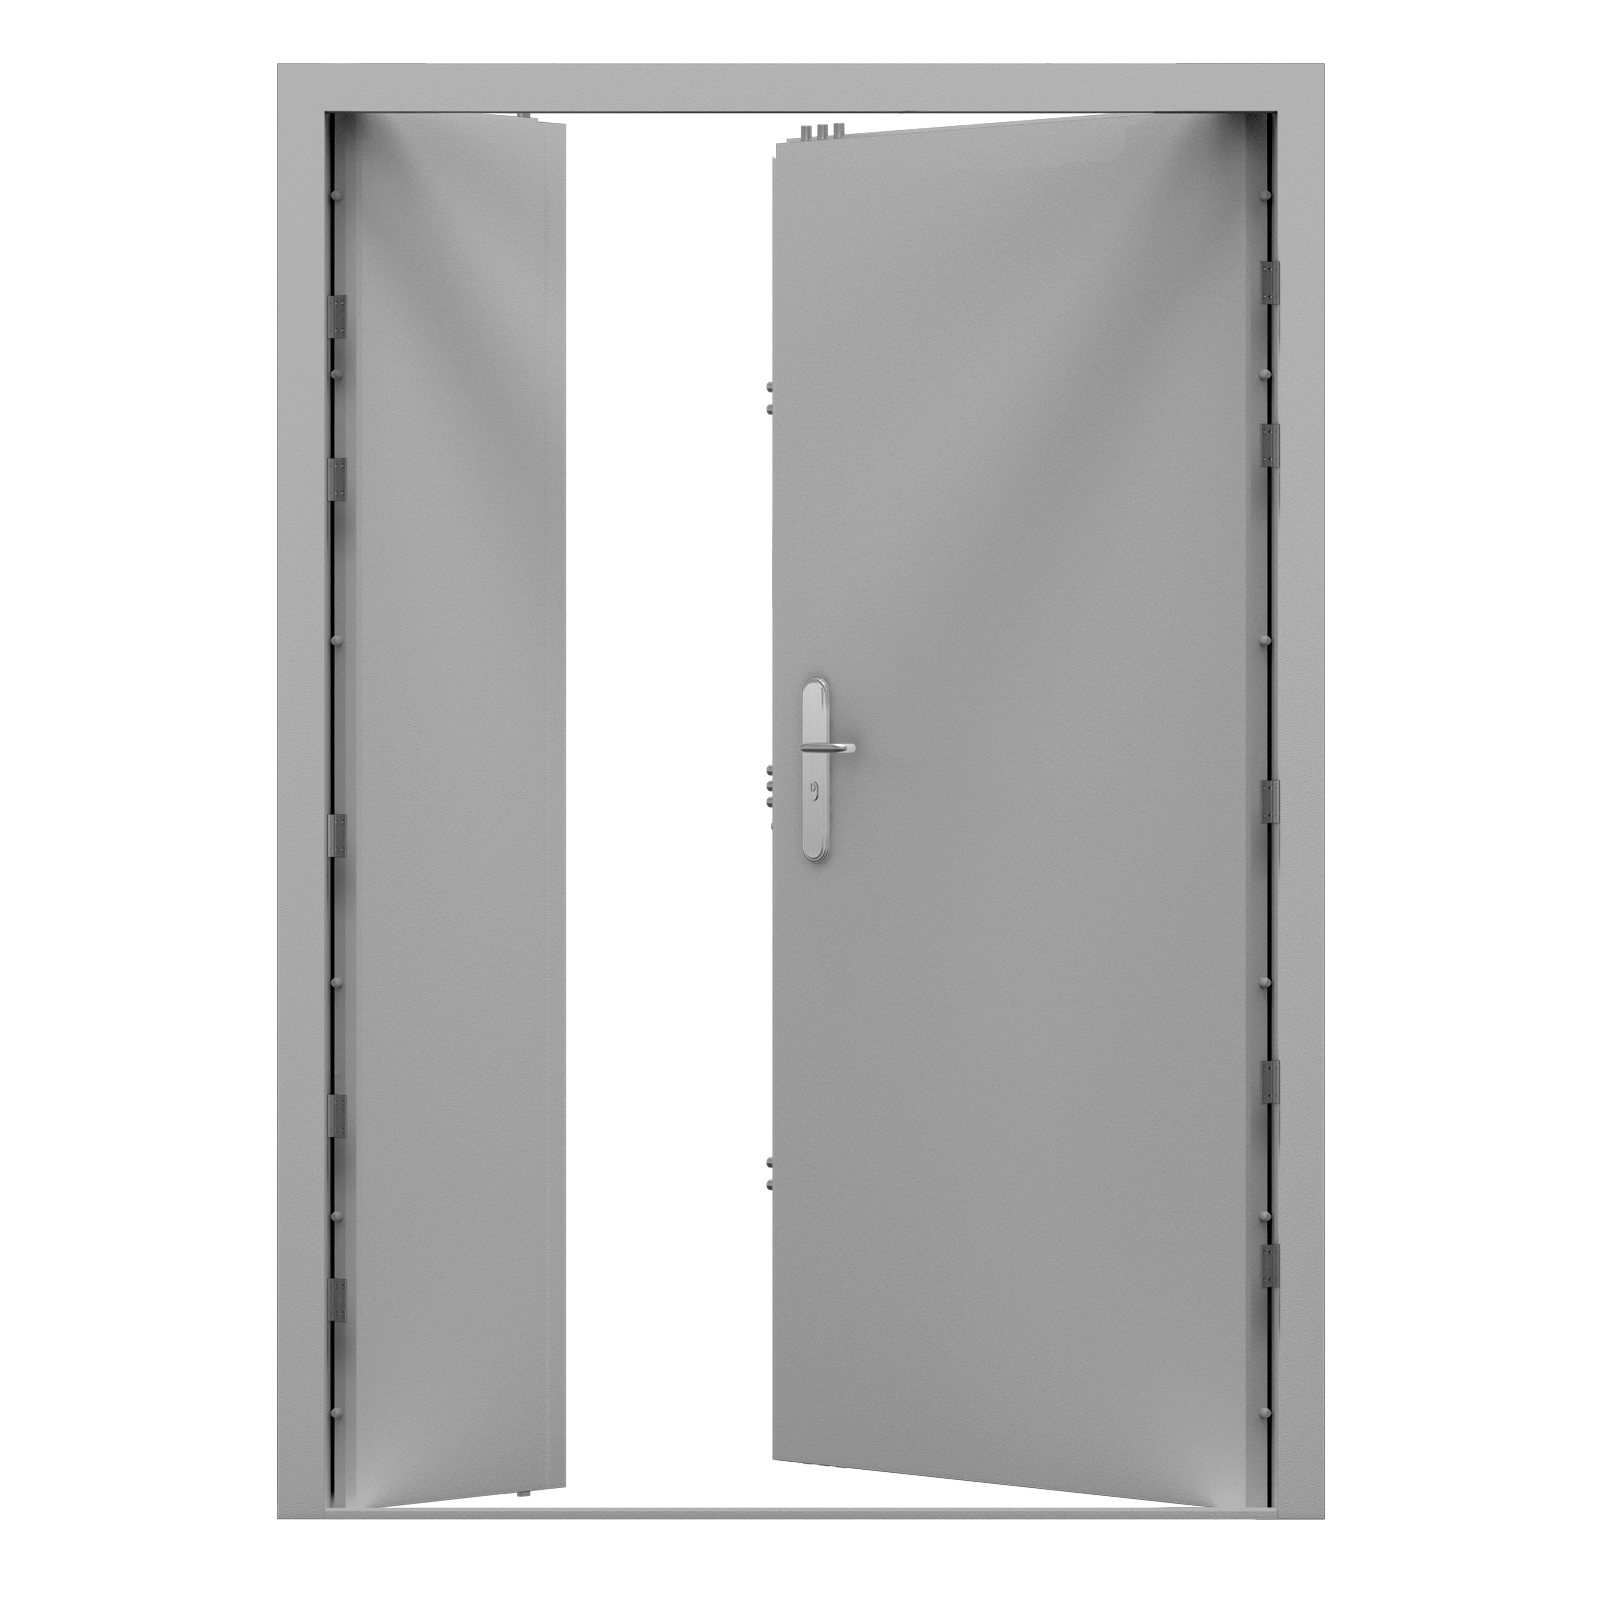 Ultra Double Steel Door High Security Latham S Steel Doors